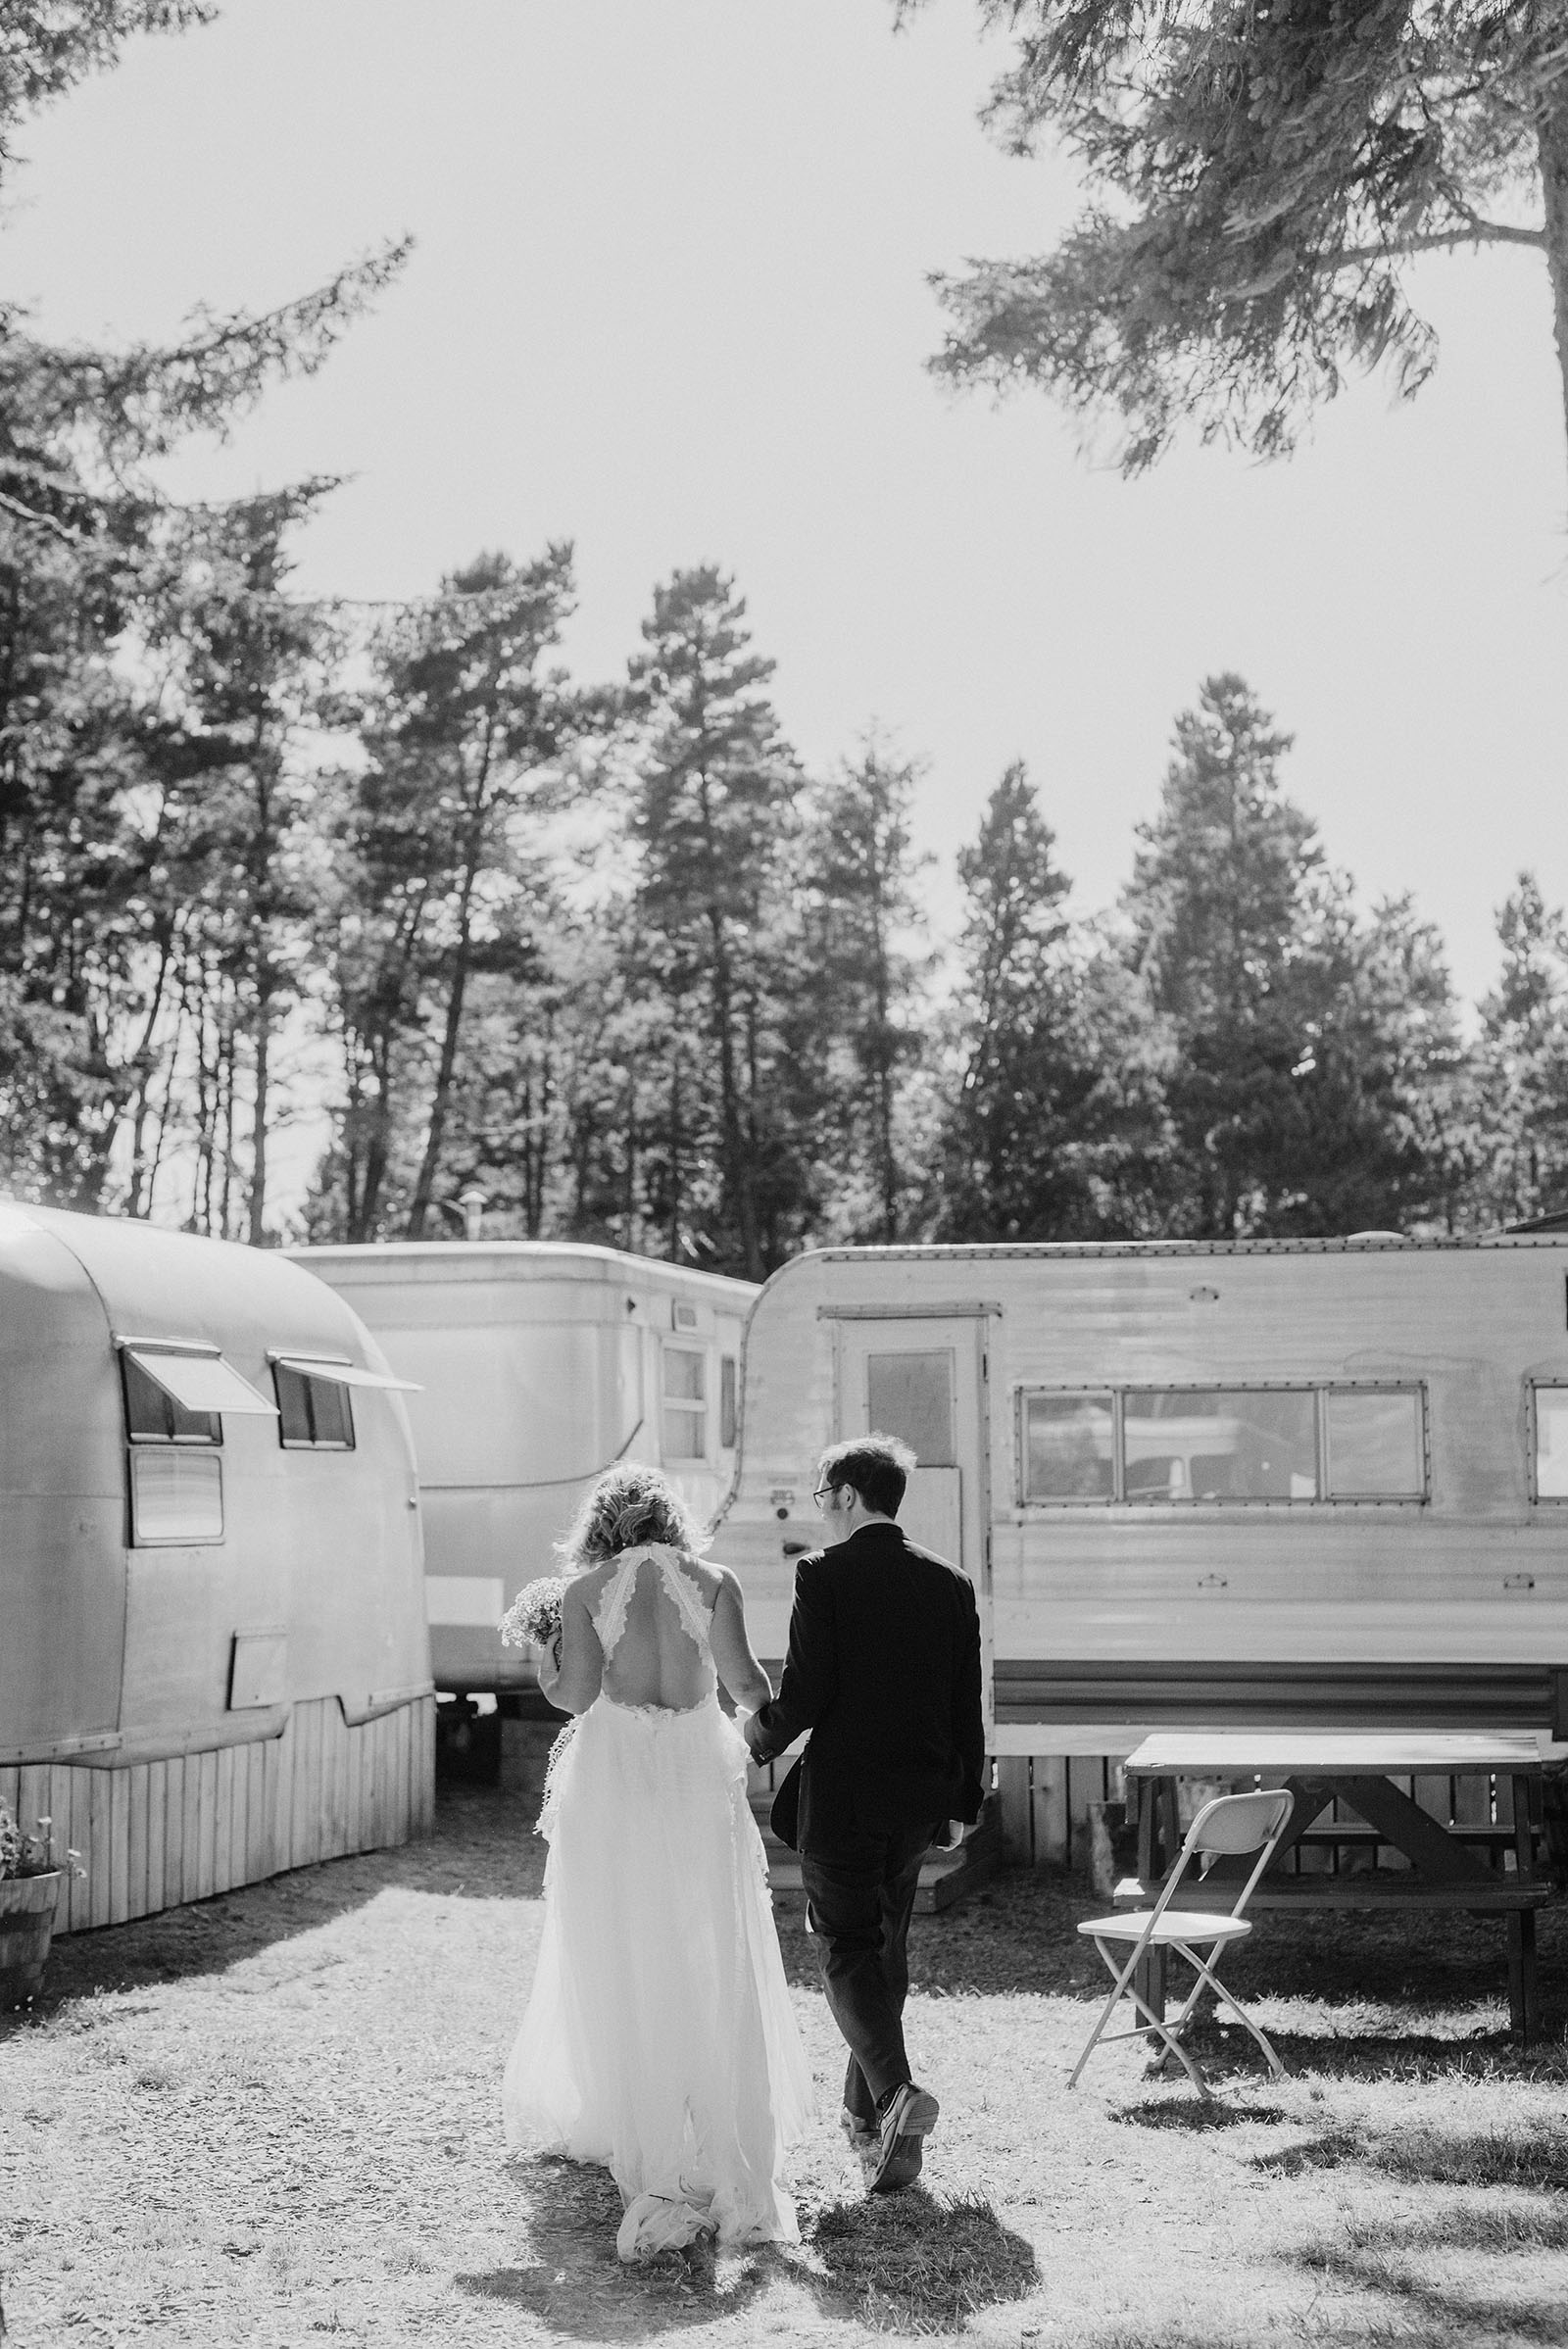 Bride and Groom walking behind the trailers at a SouWester Wedding in Seaview, WA